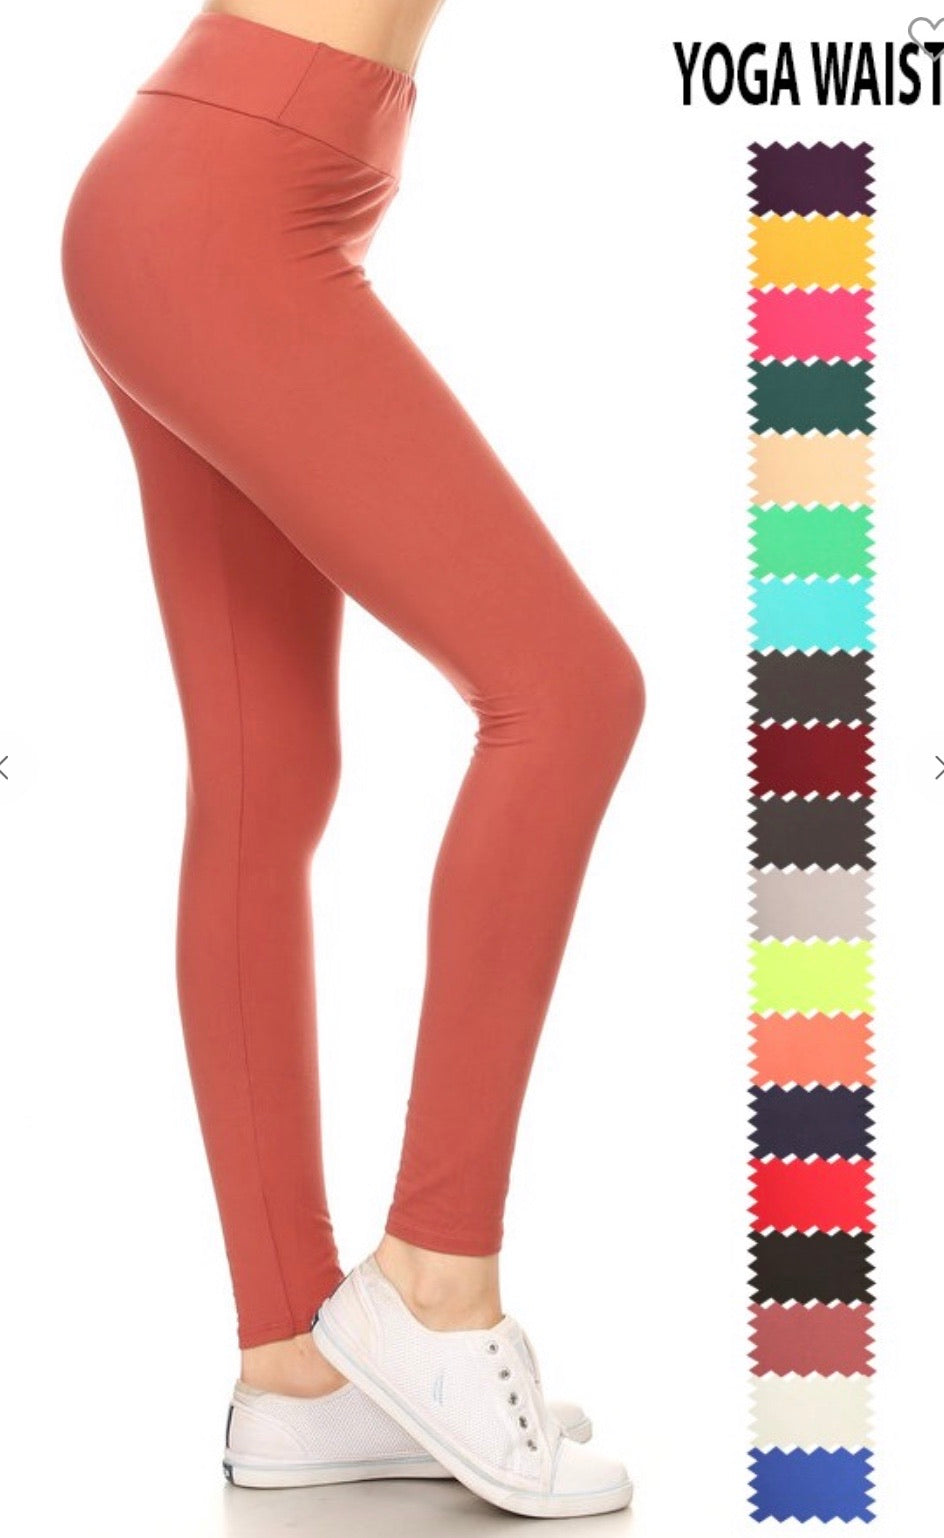 Yoga Waist Buttery Soft Leggings - 7 Colors